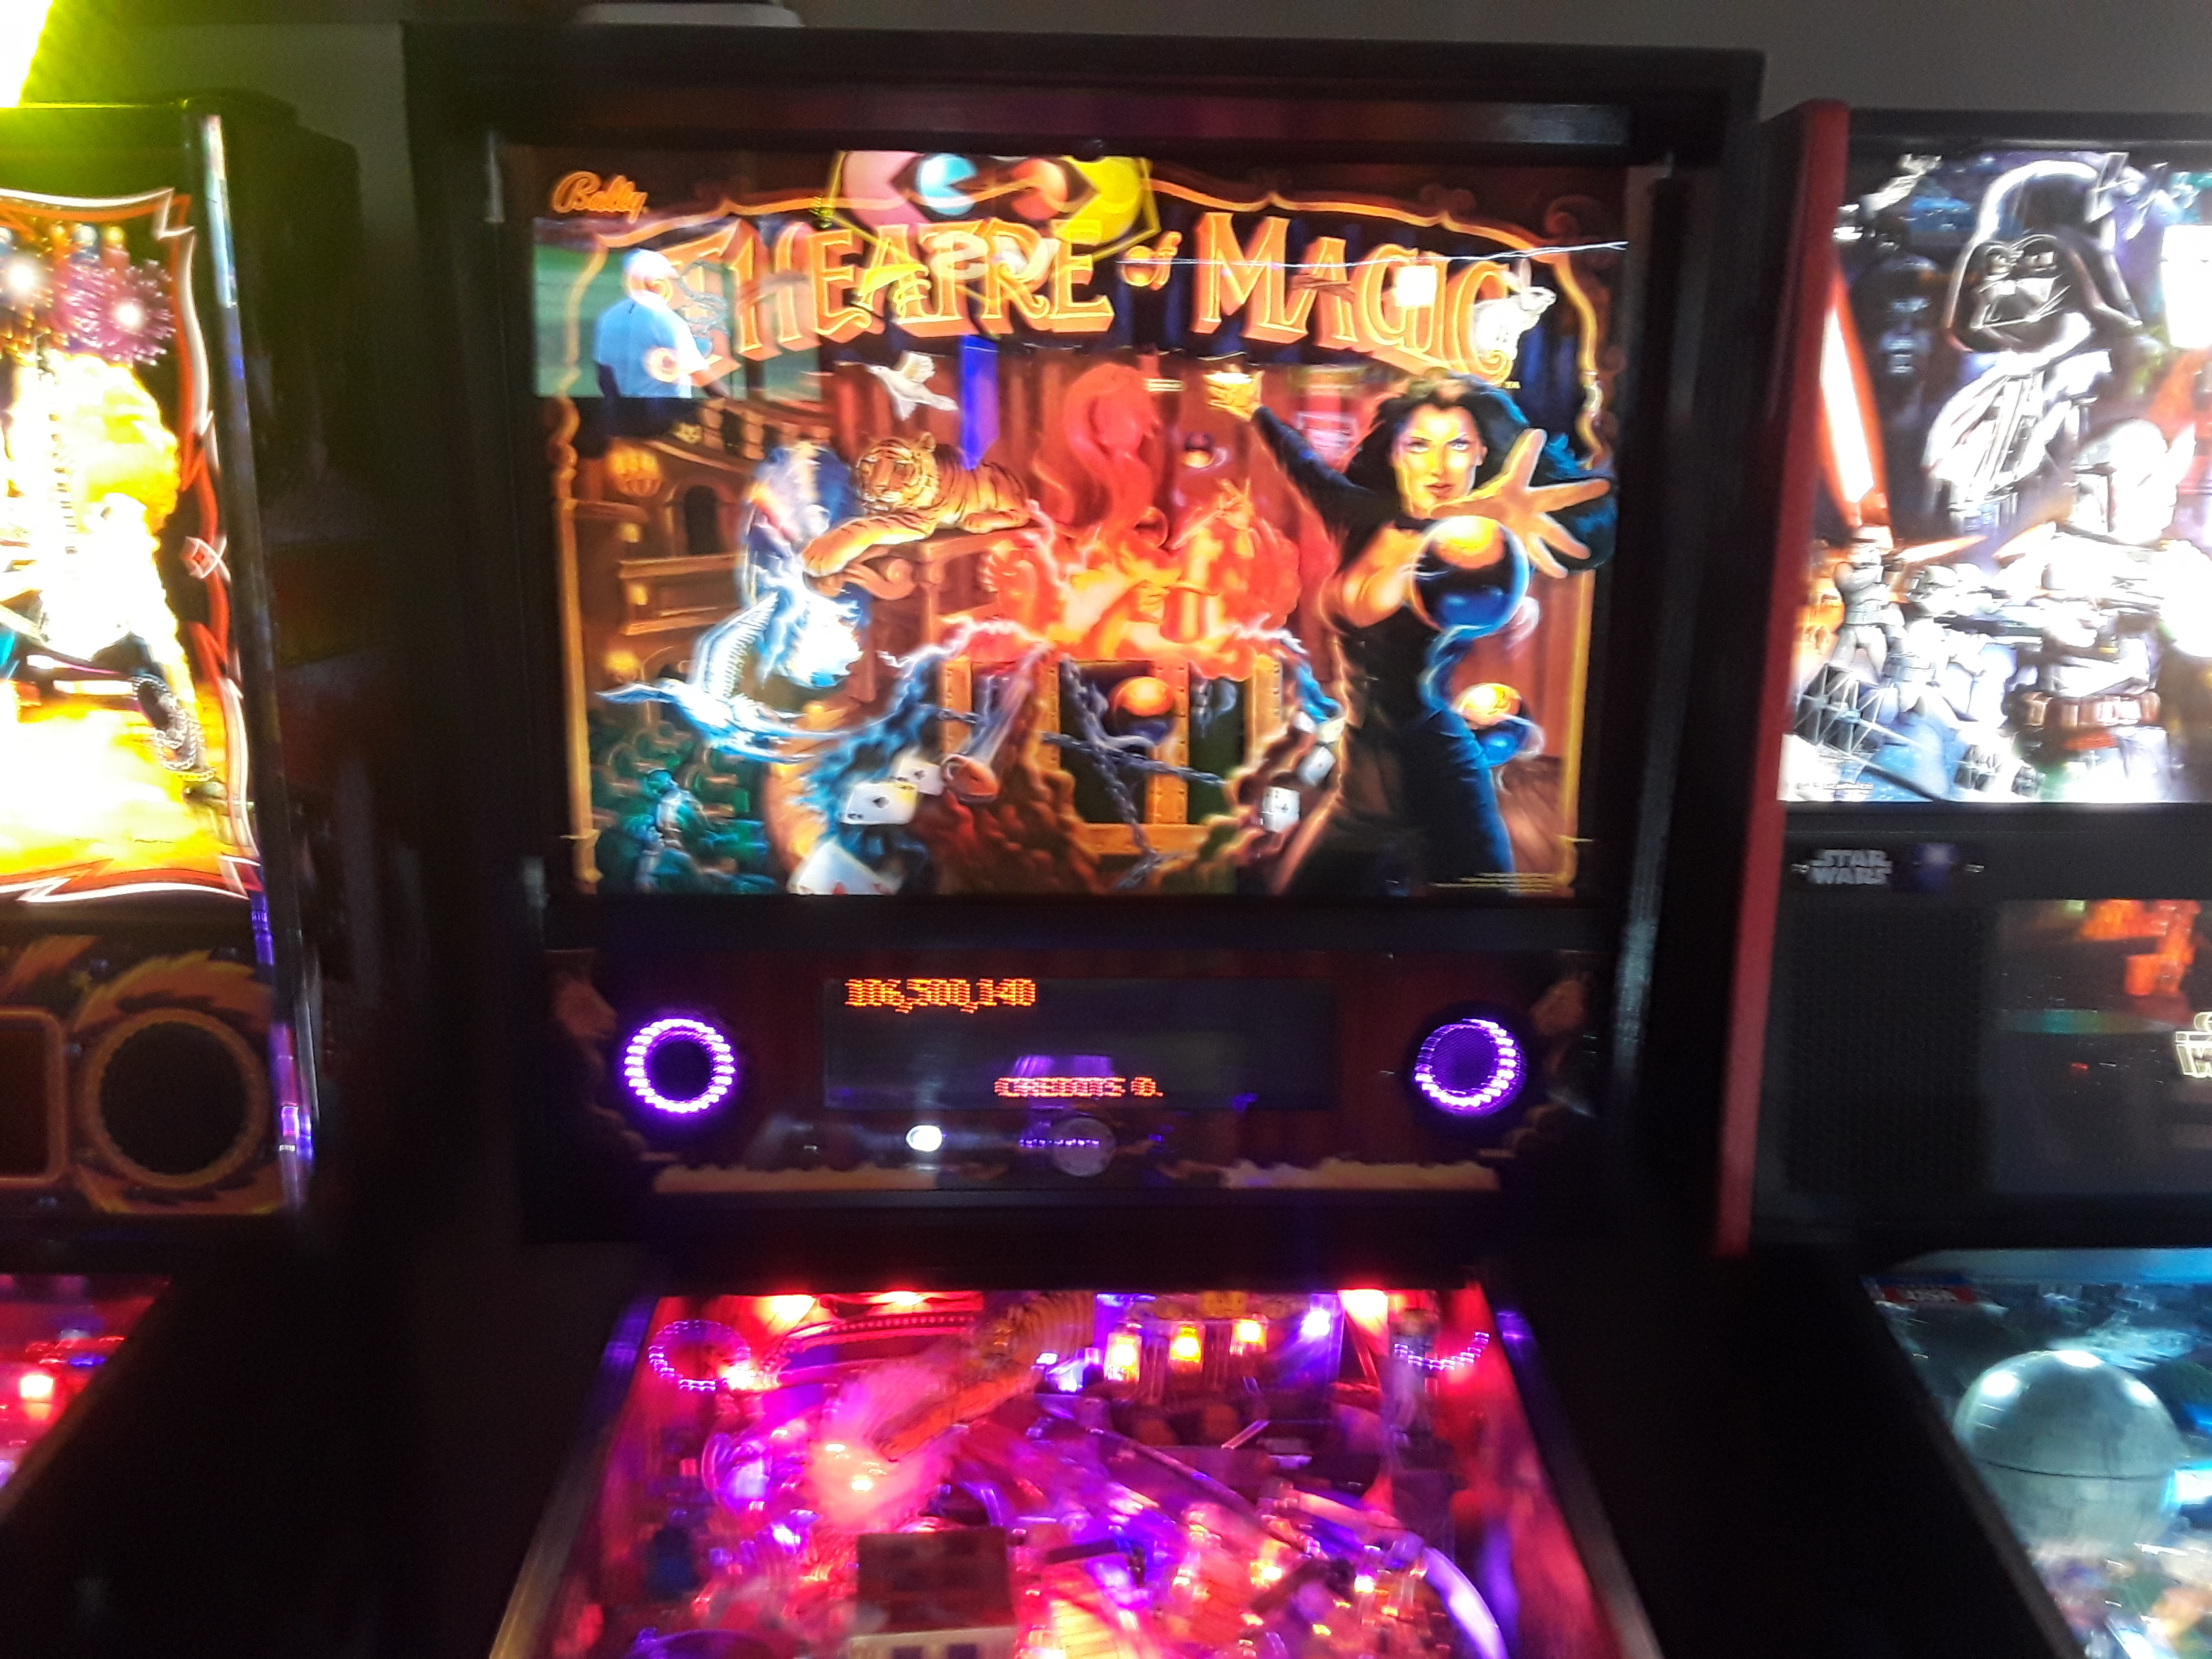 Theatre of Magic 106,500,140 points